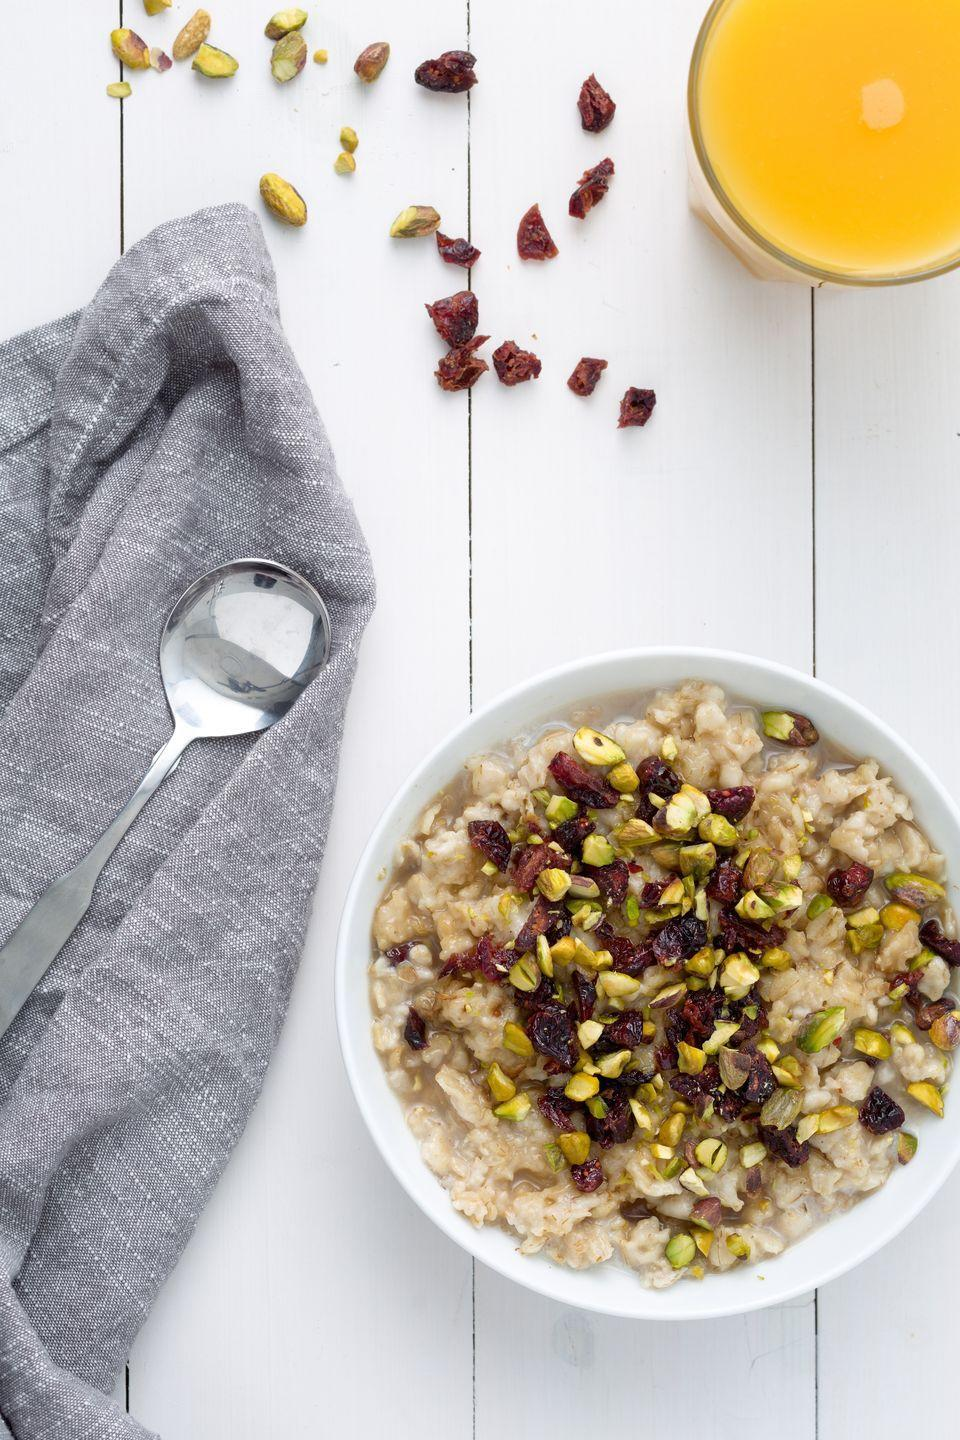 "<p>Skip the sugary toppings and add dried fruit and nuts to your oatmeal.</p><p>Get the recipe from <a href=""https://www.delish.com/cooking/recipe-ideas/recipes/a44505/maple-oatmeal-with-cranberries-and-pistachios-recipe/"" rel=""nofollow noopener"" target=""_blank"" data-ylk=""slk:Delish"" class=""link rapid-noclick-resp"">Delish</a>.</p>"